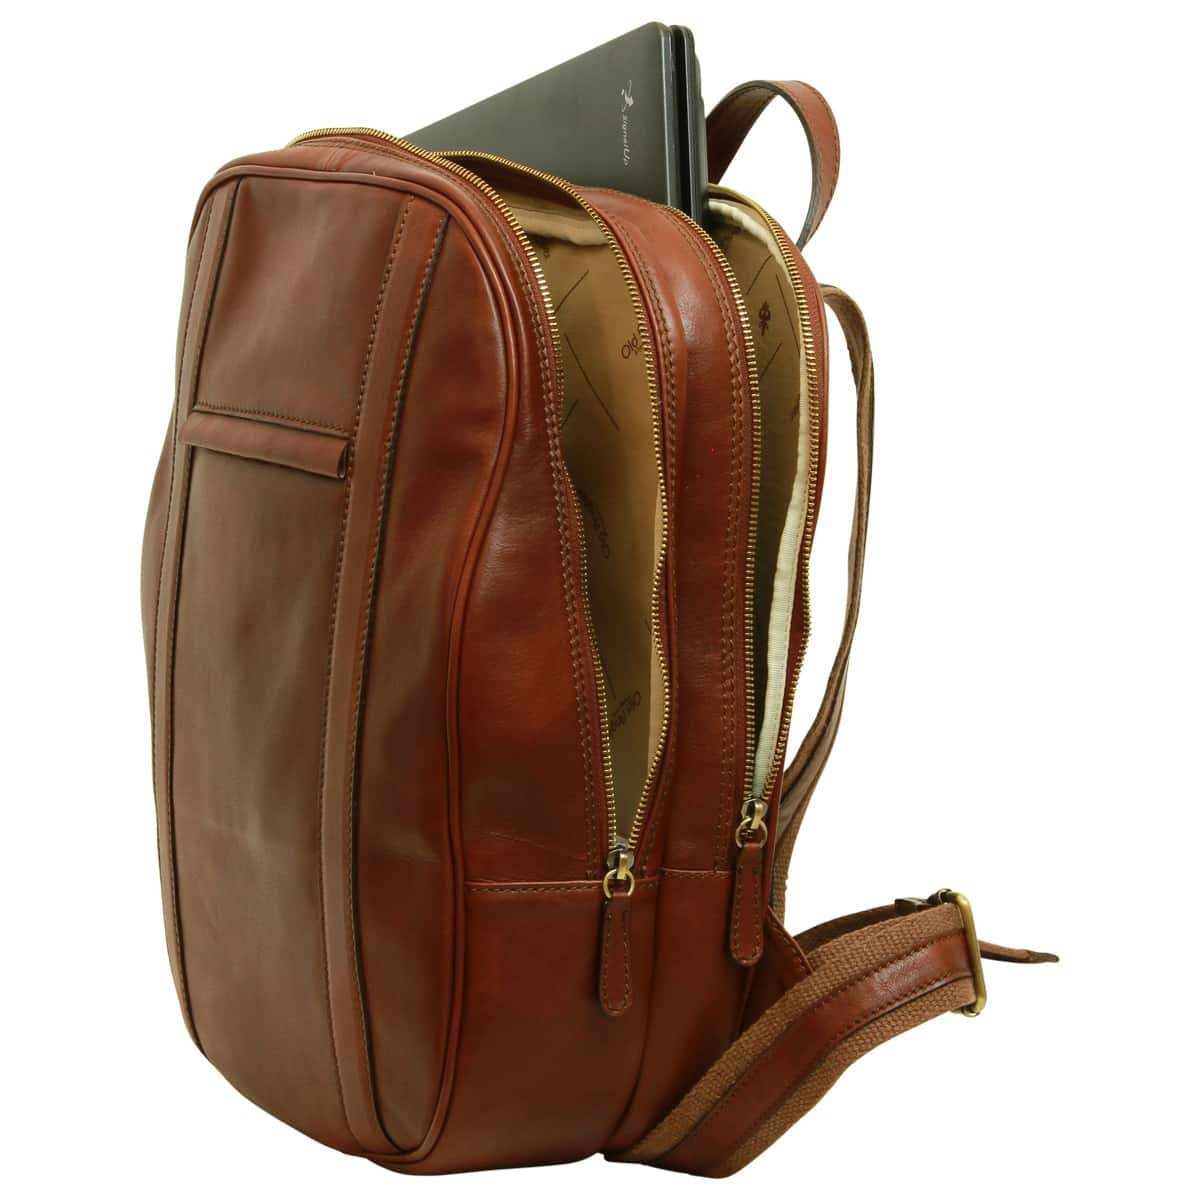 Soft Calfskin Leather Laptop Backpack - Brown | 031491MA E | Old Angler Firenze